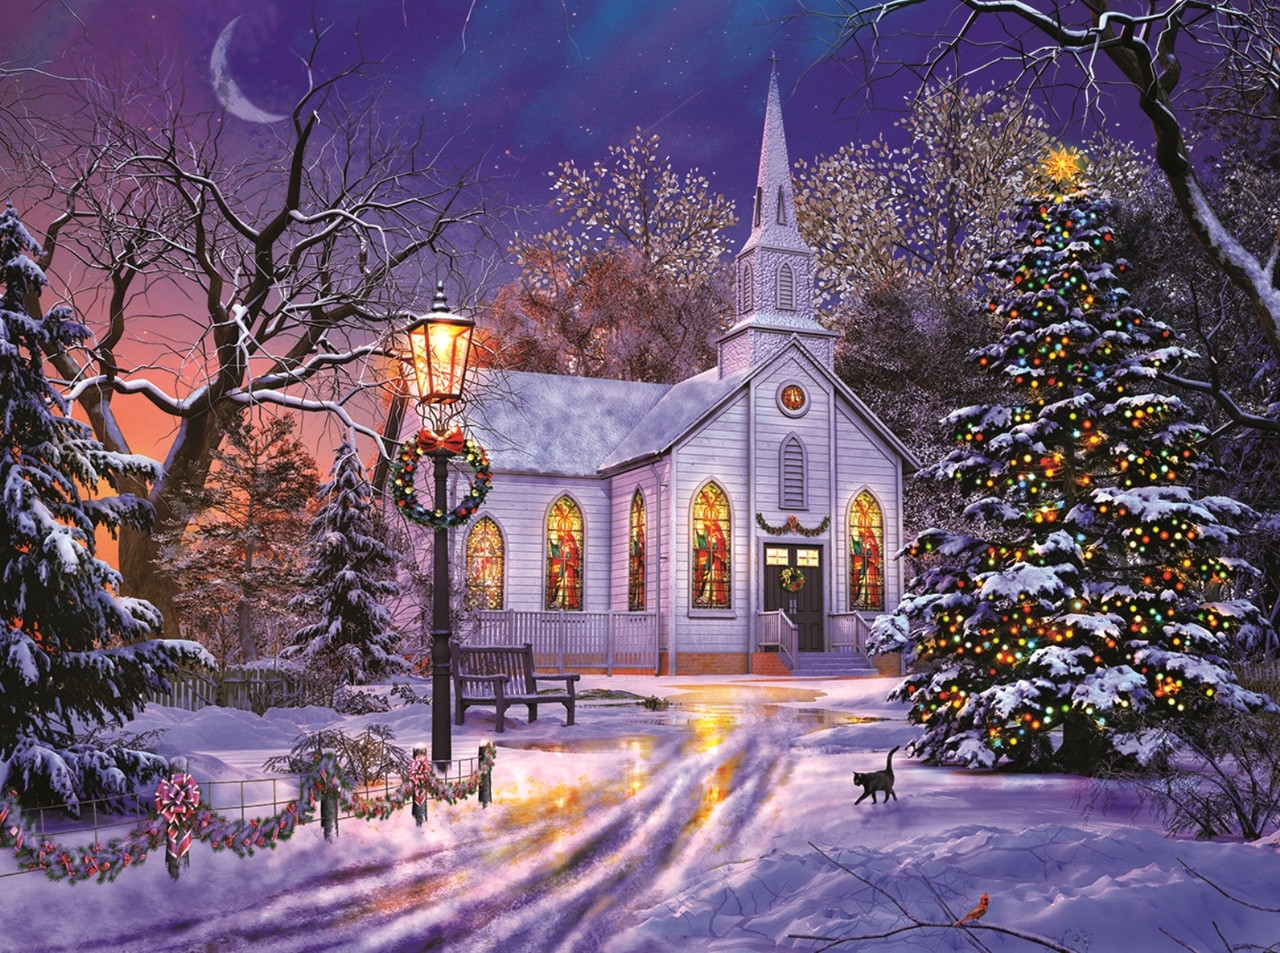 The Old Christmas Church - 1000pc Jigsaw Puzzle By Sunsout ...